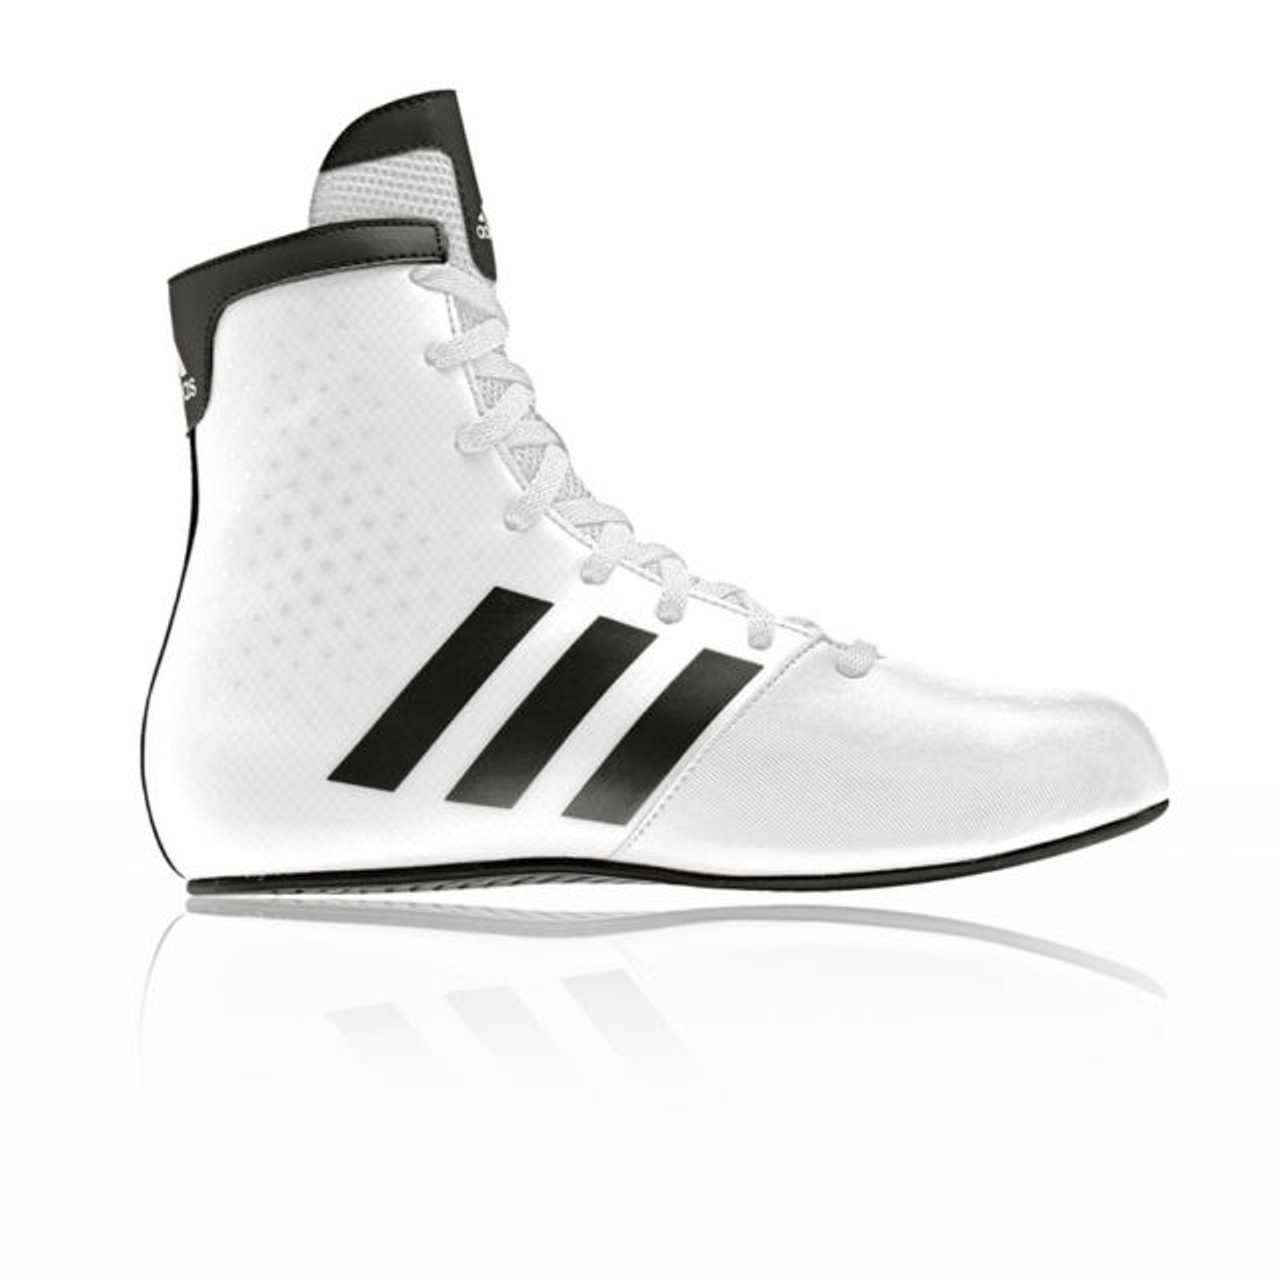 Buy Kids Boxing Boots & Shoes | Top